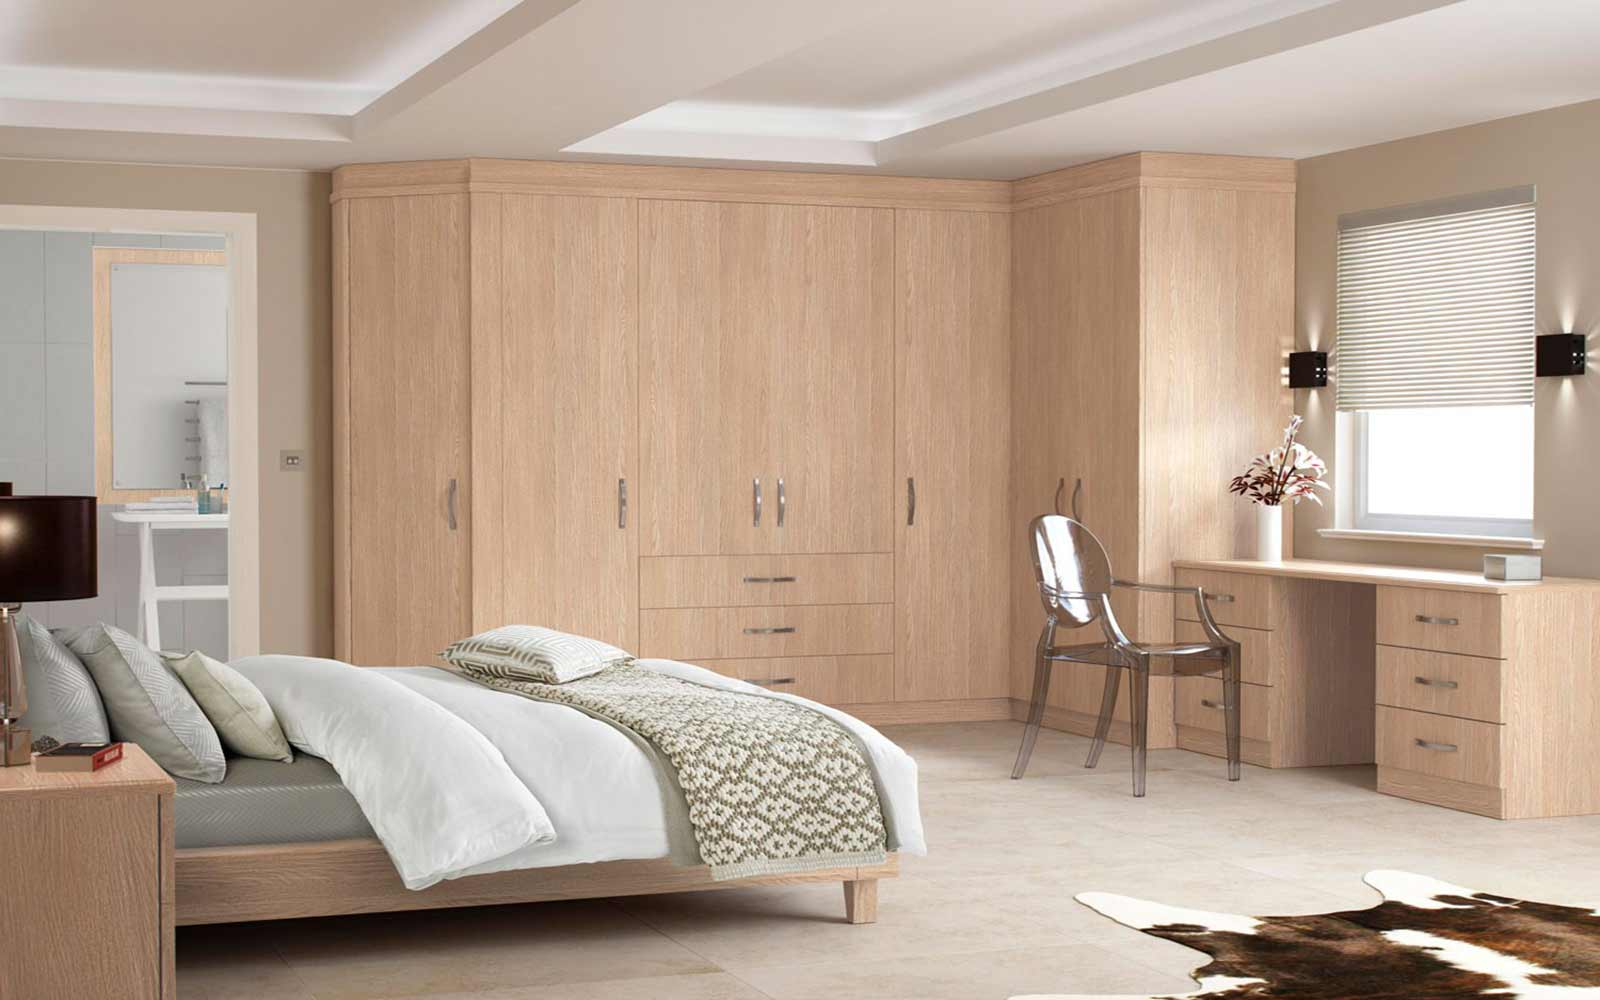 Walkin Wardrobes In Delhi India Walking Wardrobe